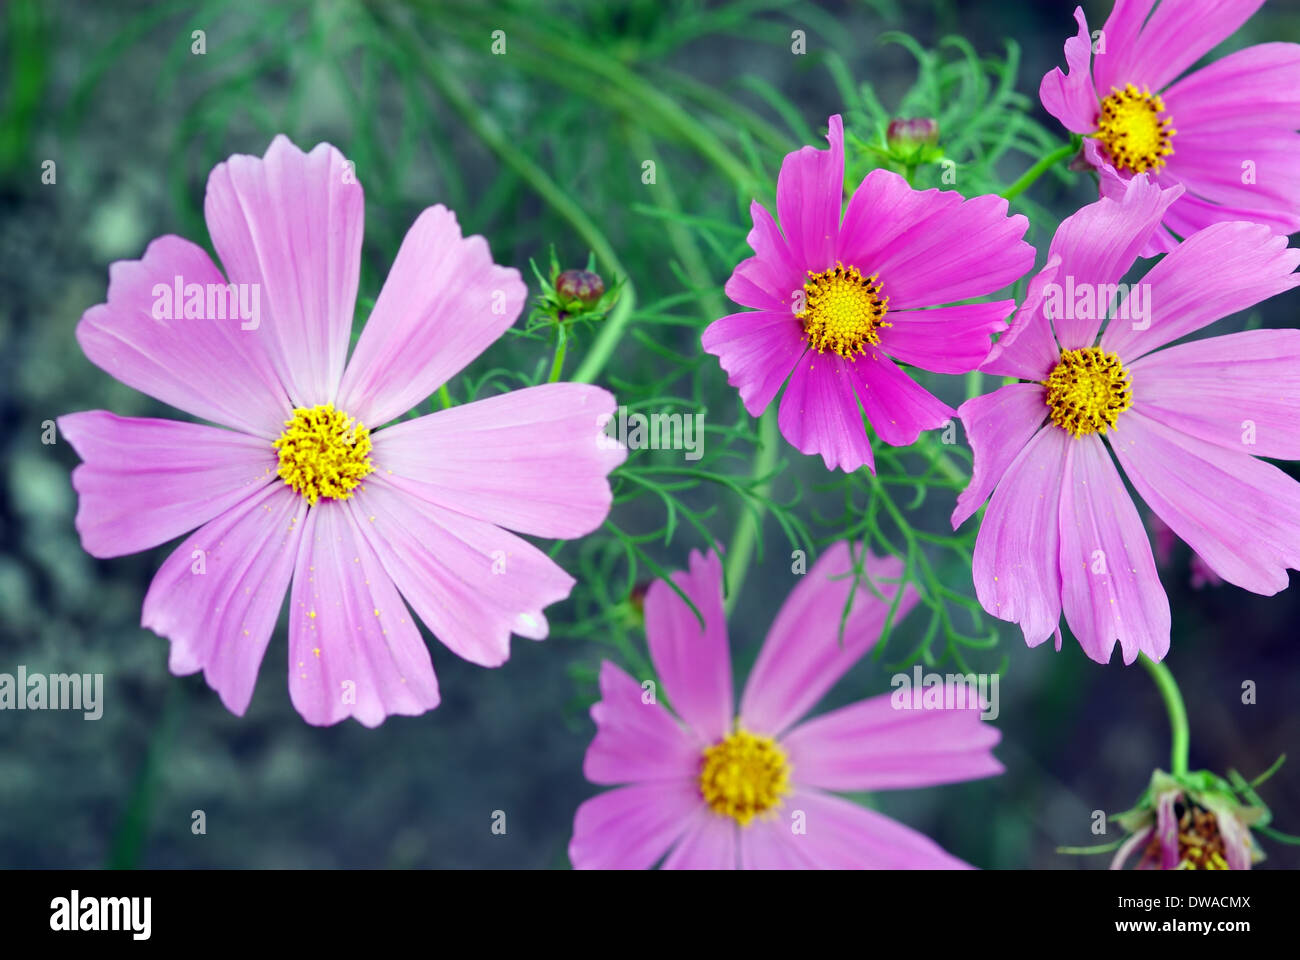 A close up image with lila flowers as background - Stock Image